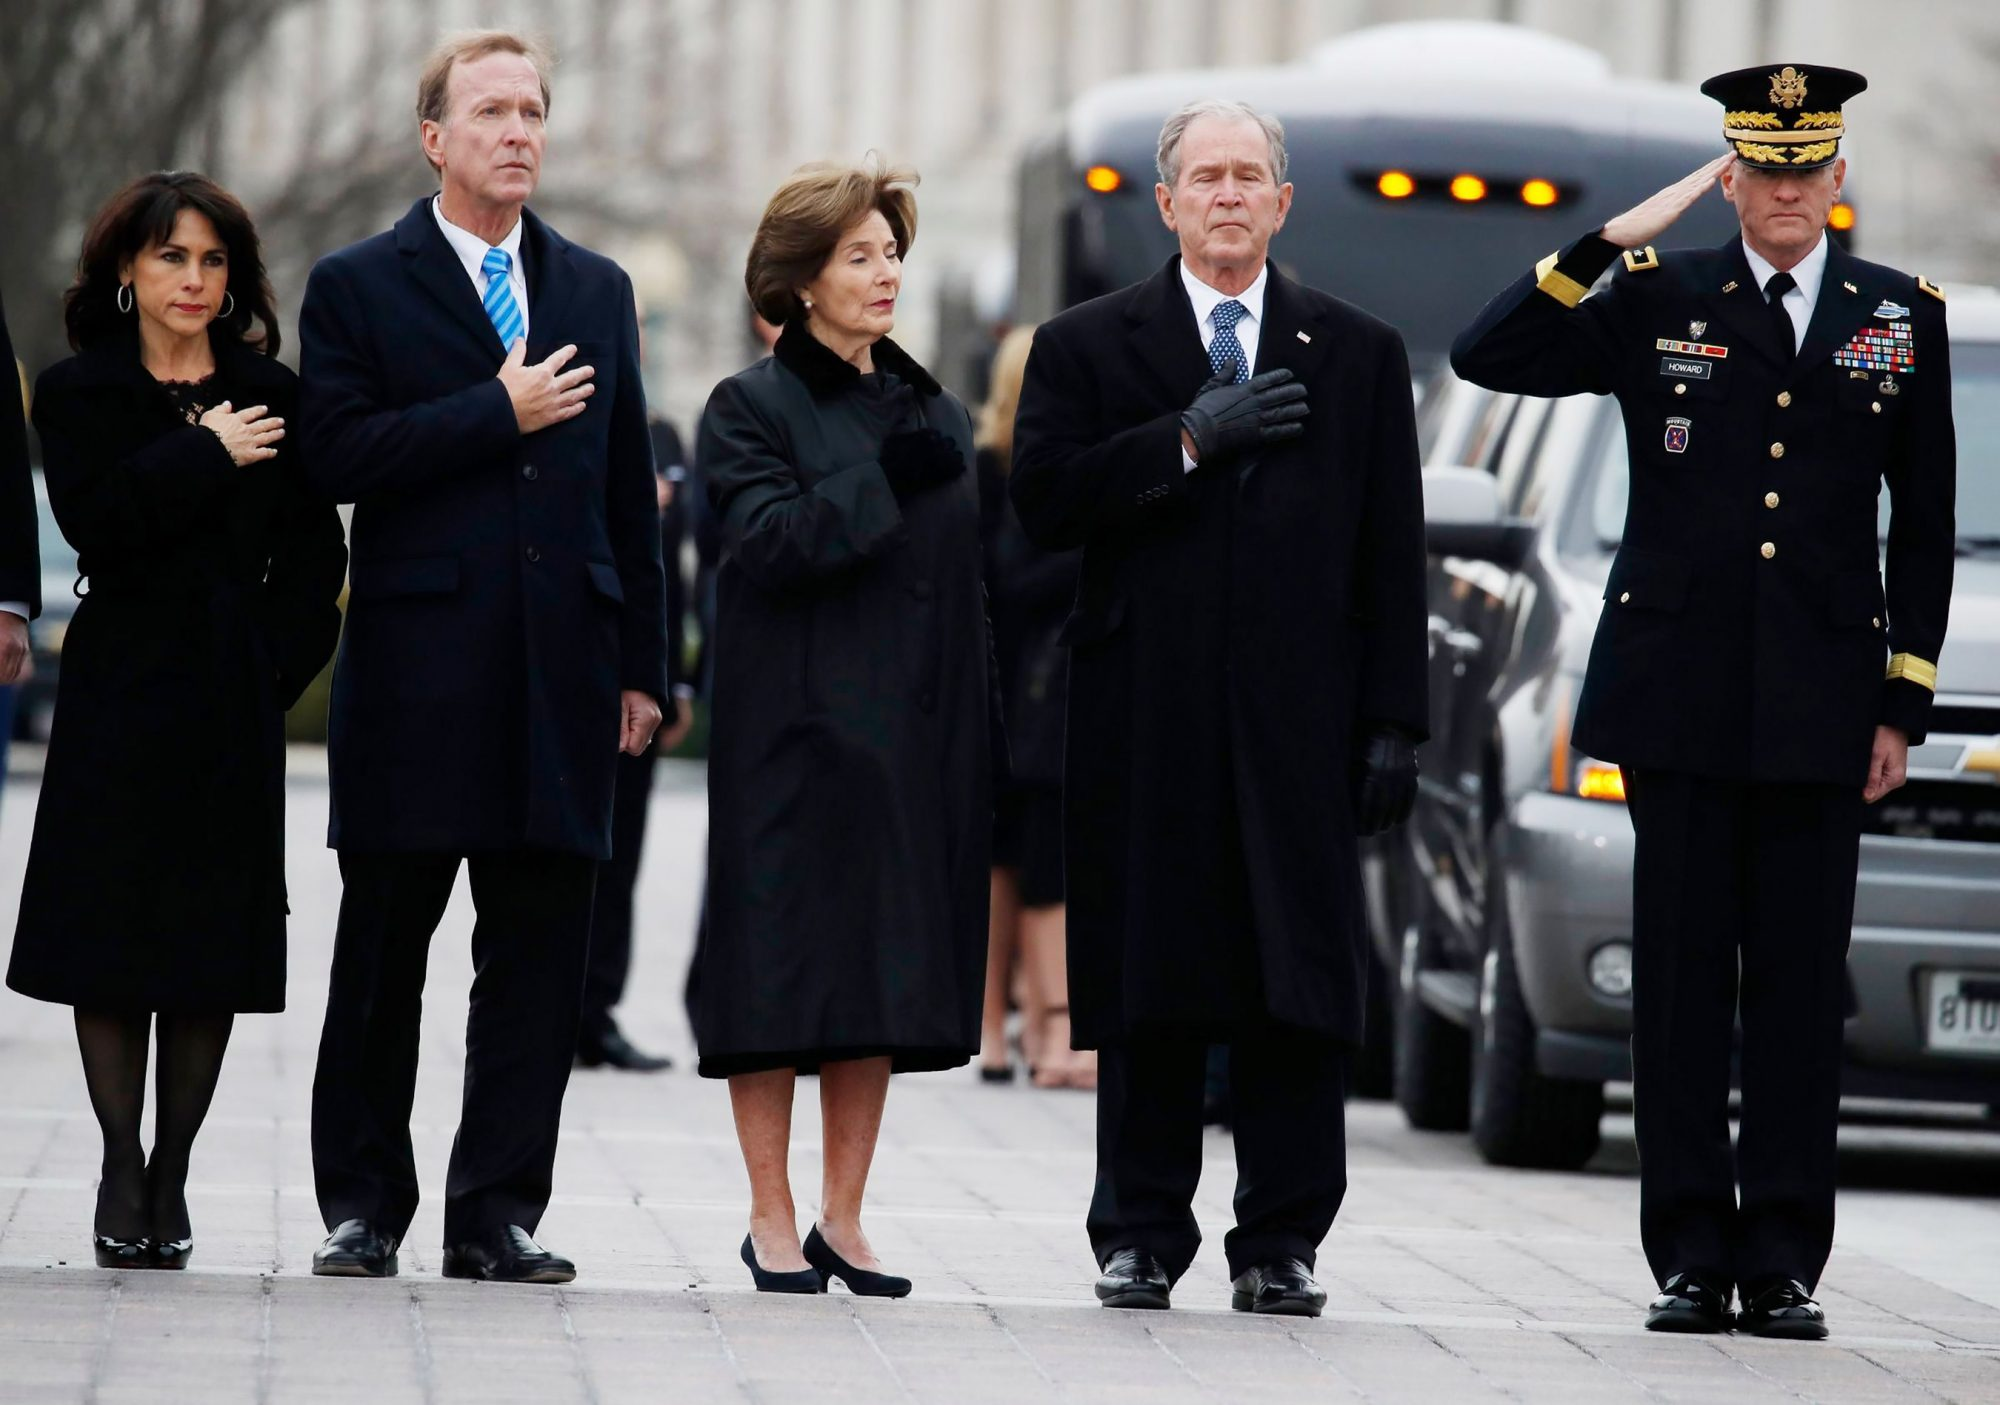 George H.W. Bush dies at 94, Washington, Dc, USA - 05 Dec 2018